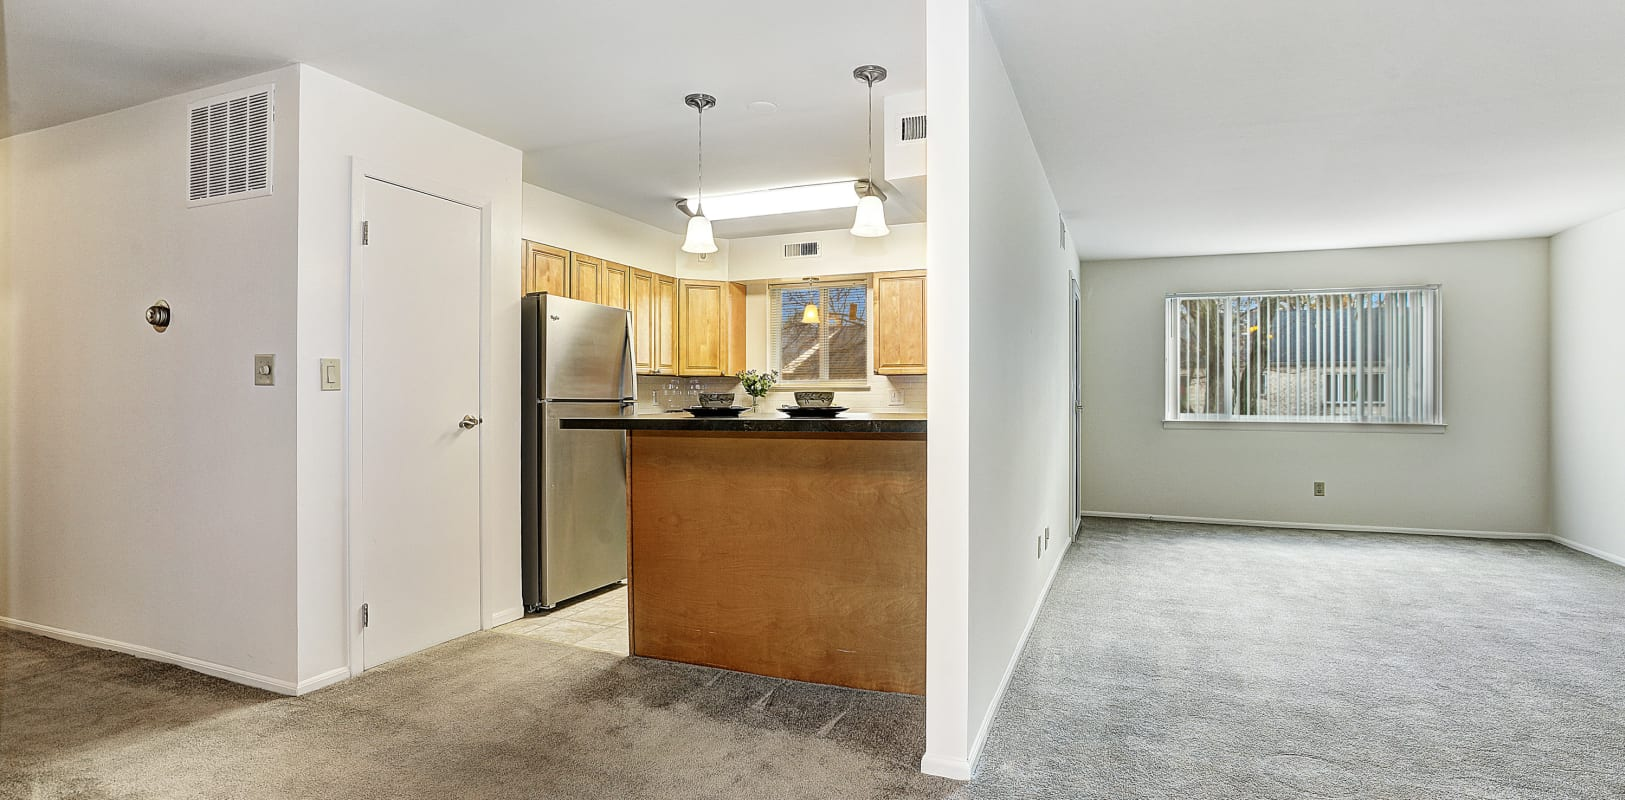 Kitchen and living room ready for move in at Penn Crest Apartments in Allentown, Pennsylvania